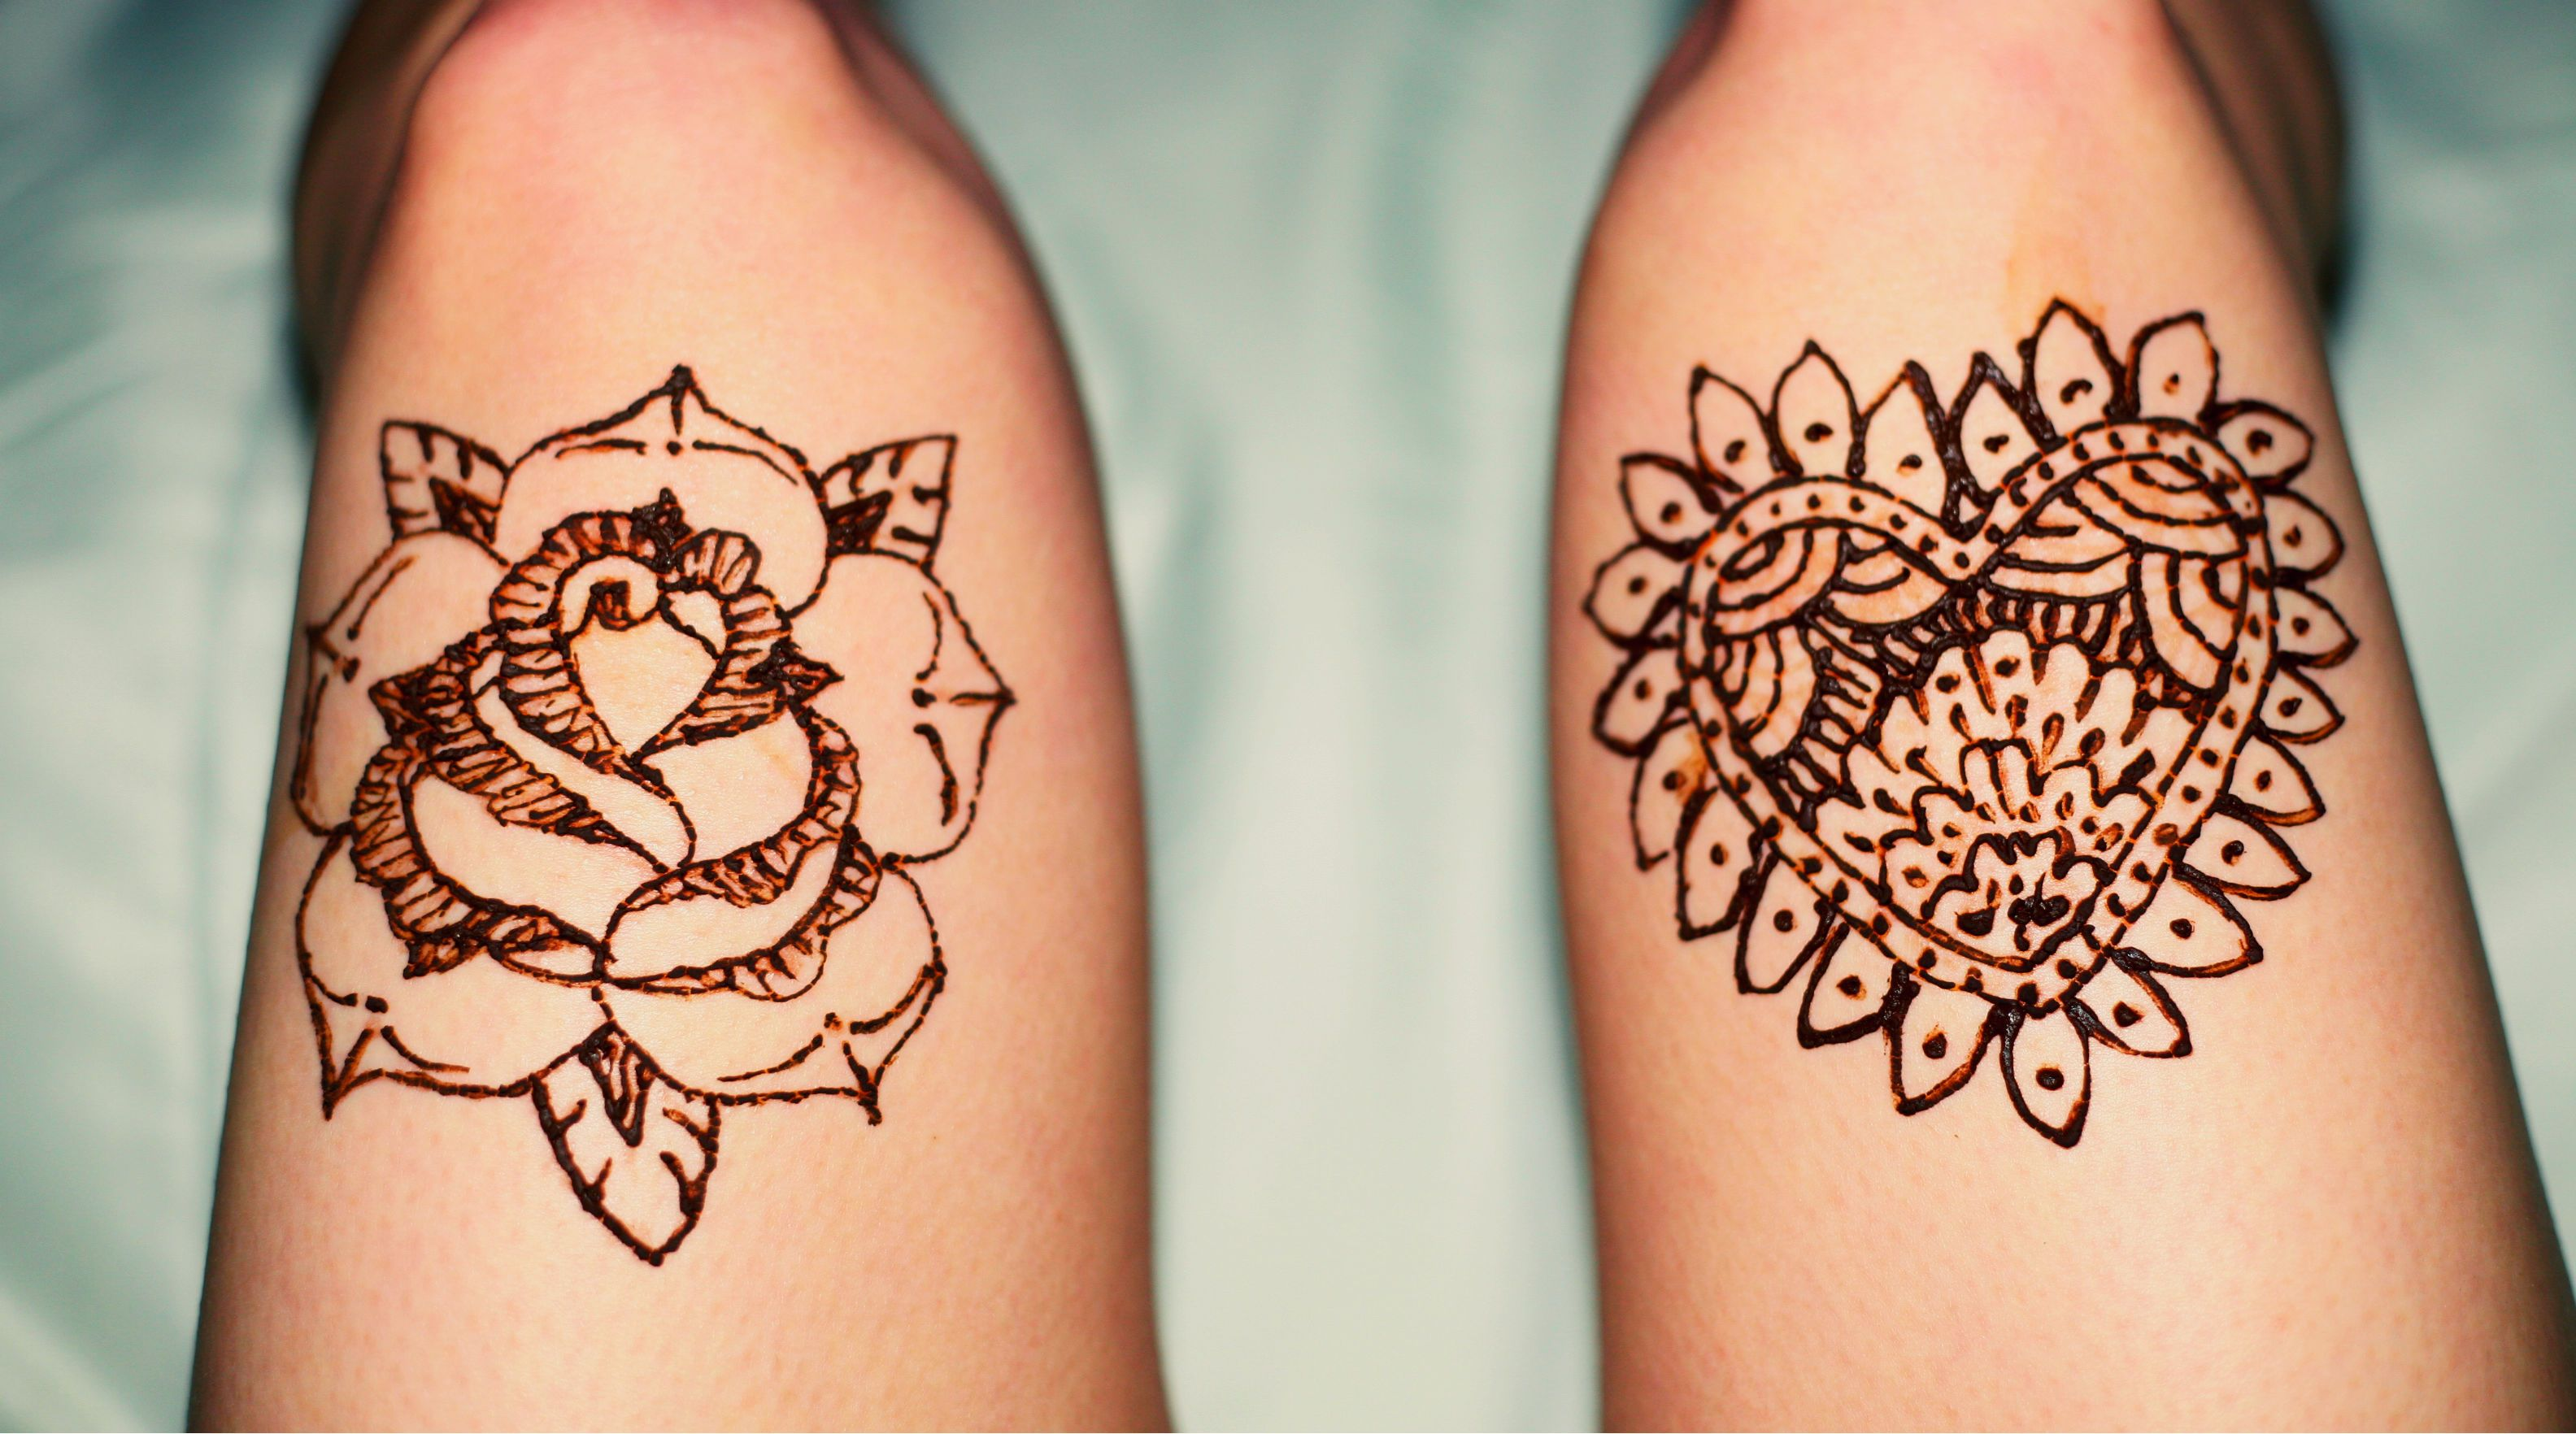 Mehndi Tattoo Flower Designs : Simple mehndi bail designs have one of cool henna u2013 need